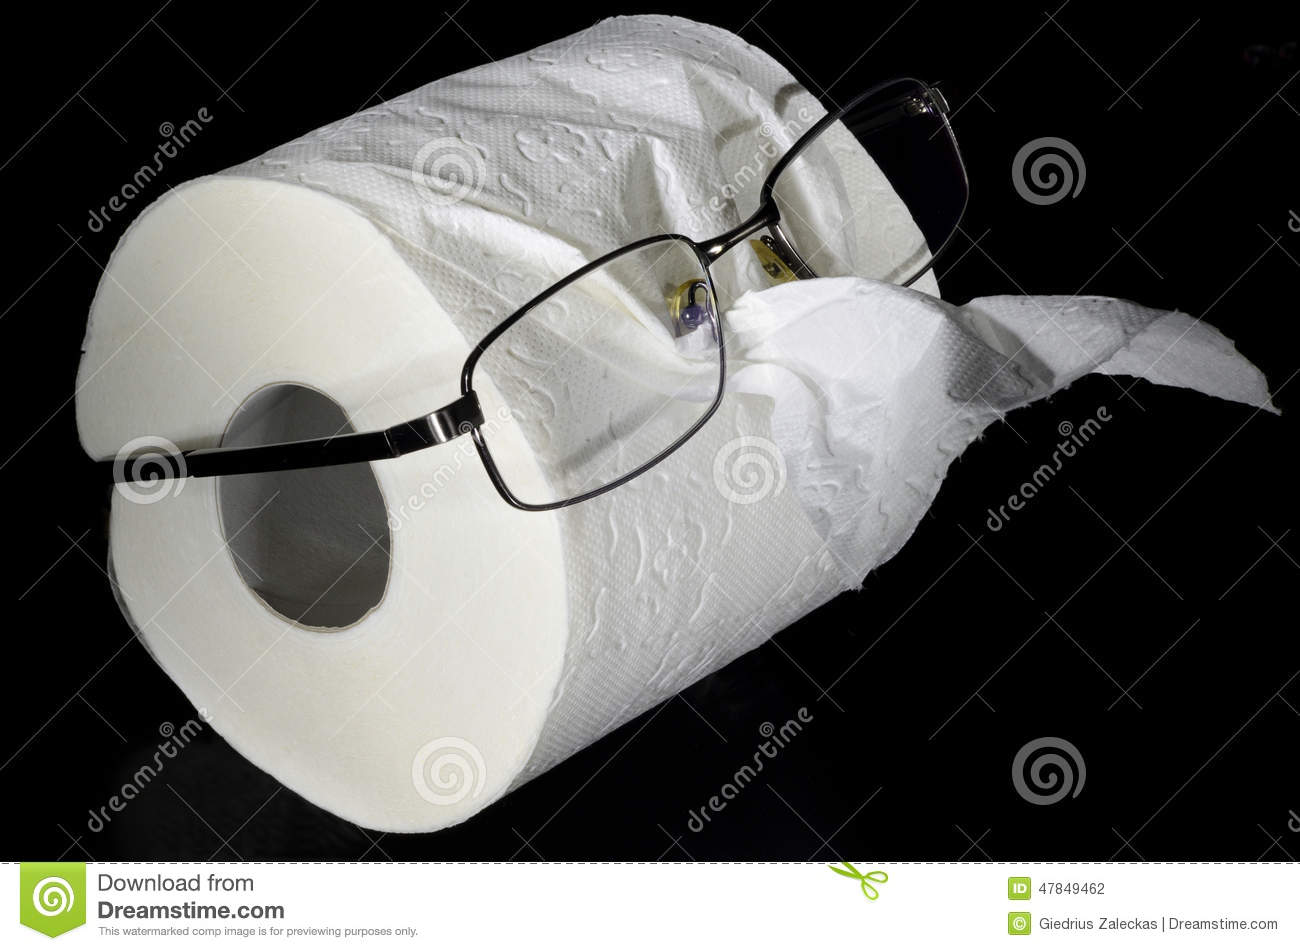 how to clean glasses with toilet paper